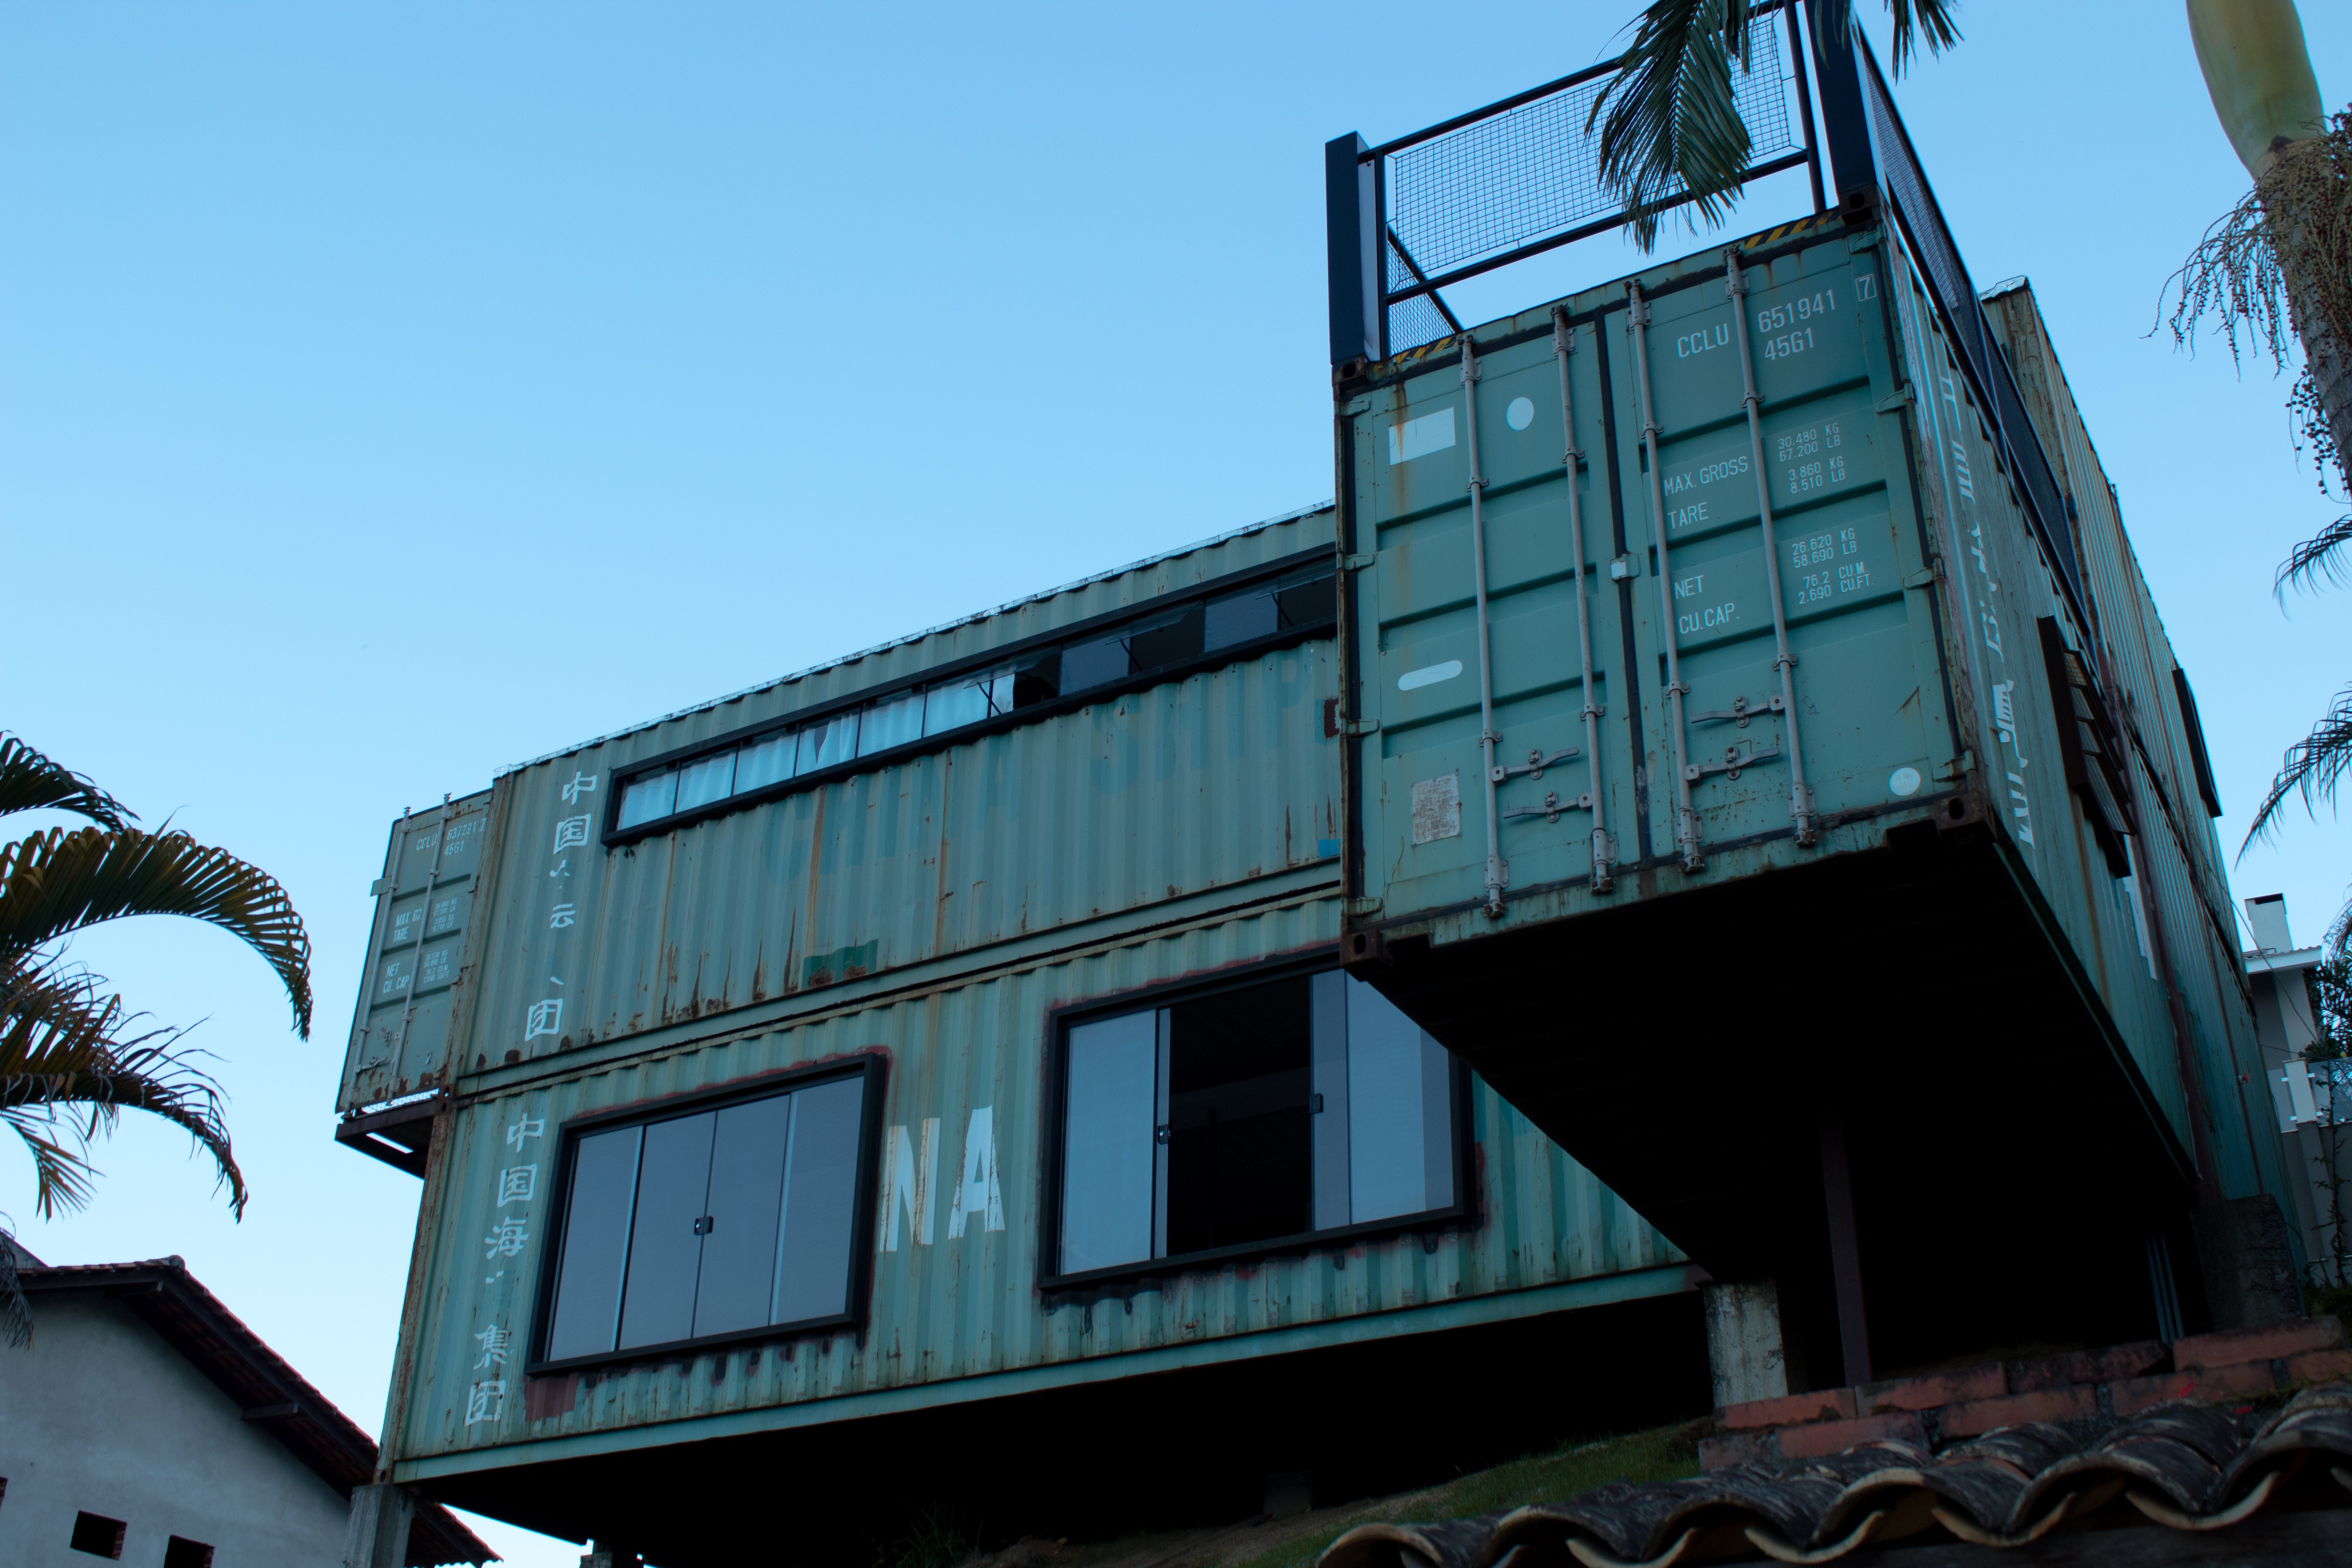 Container Housing with big windows